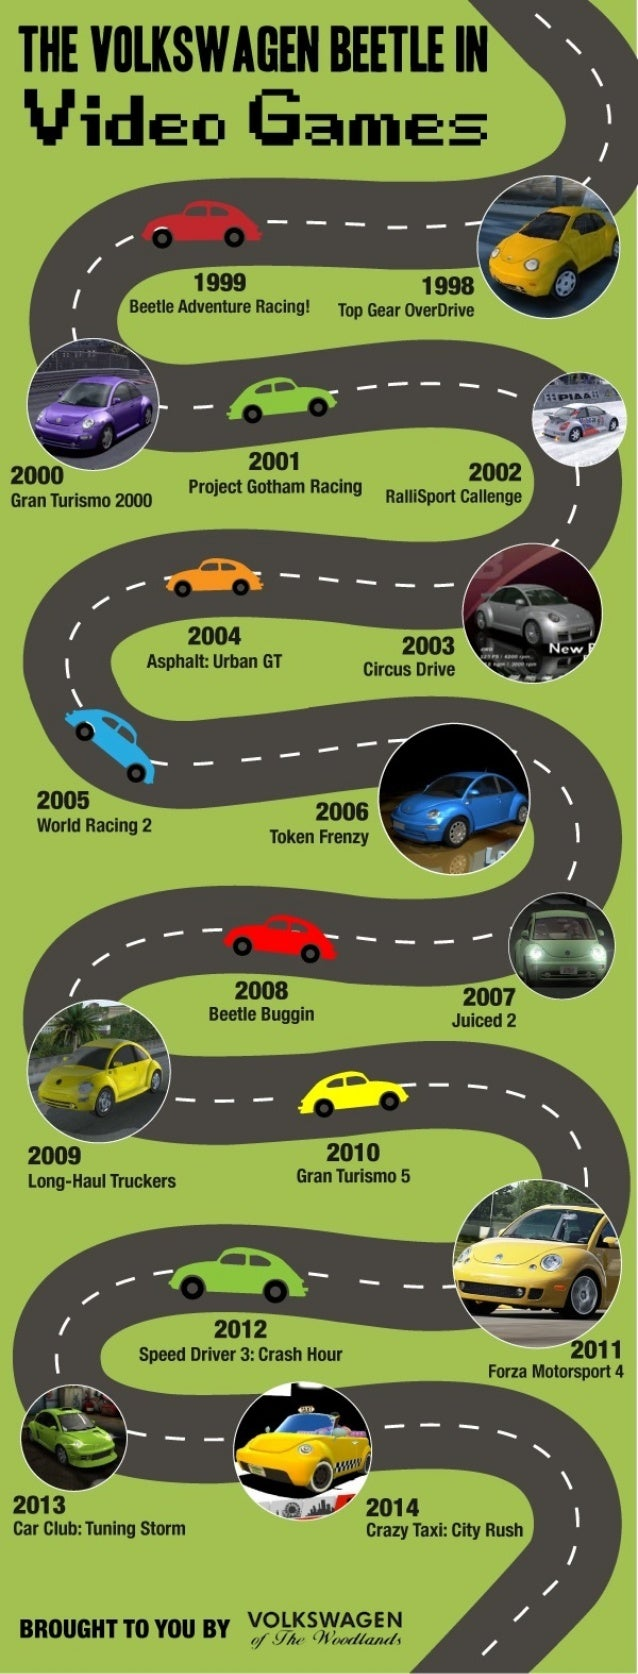 The Volkswagen Beetle In Video Games Infographic